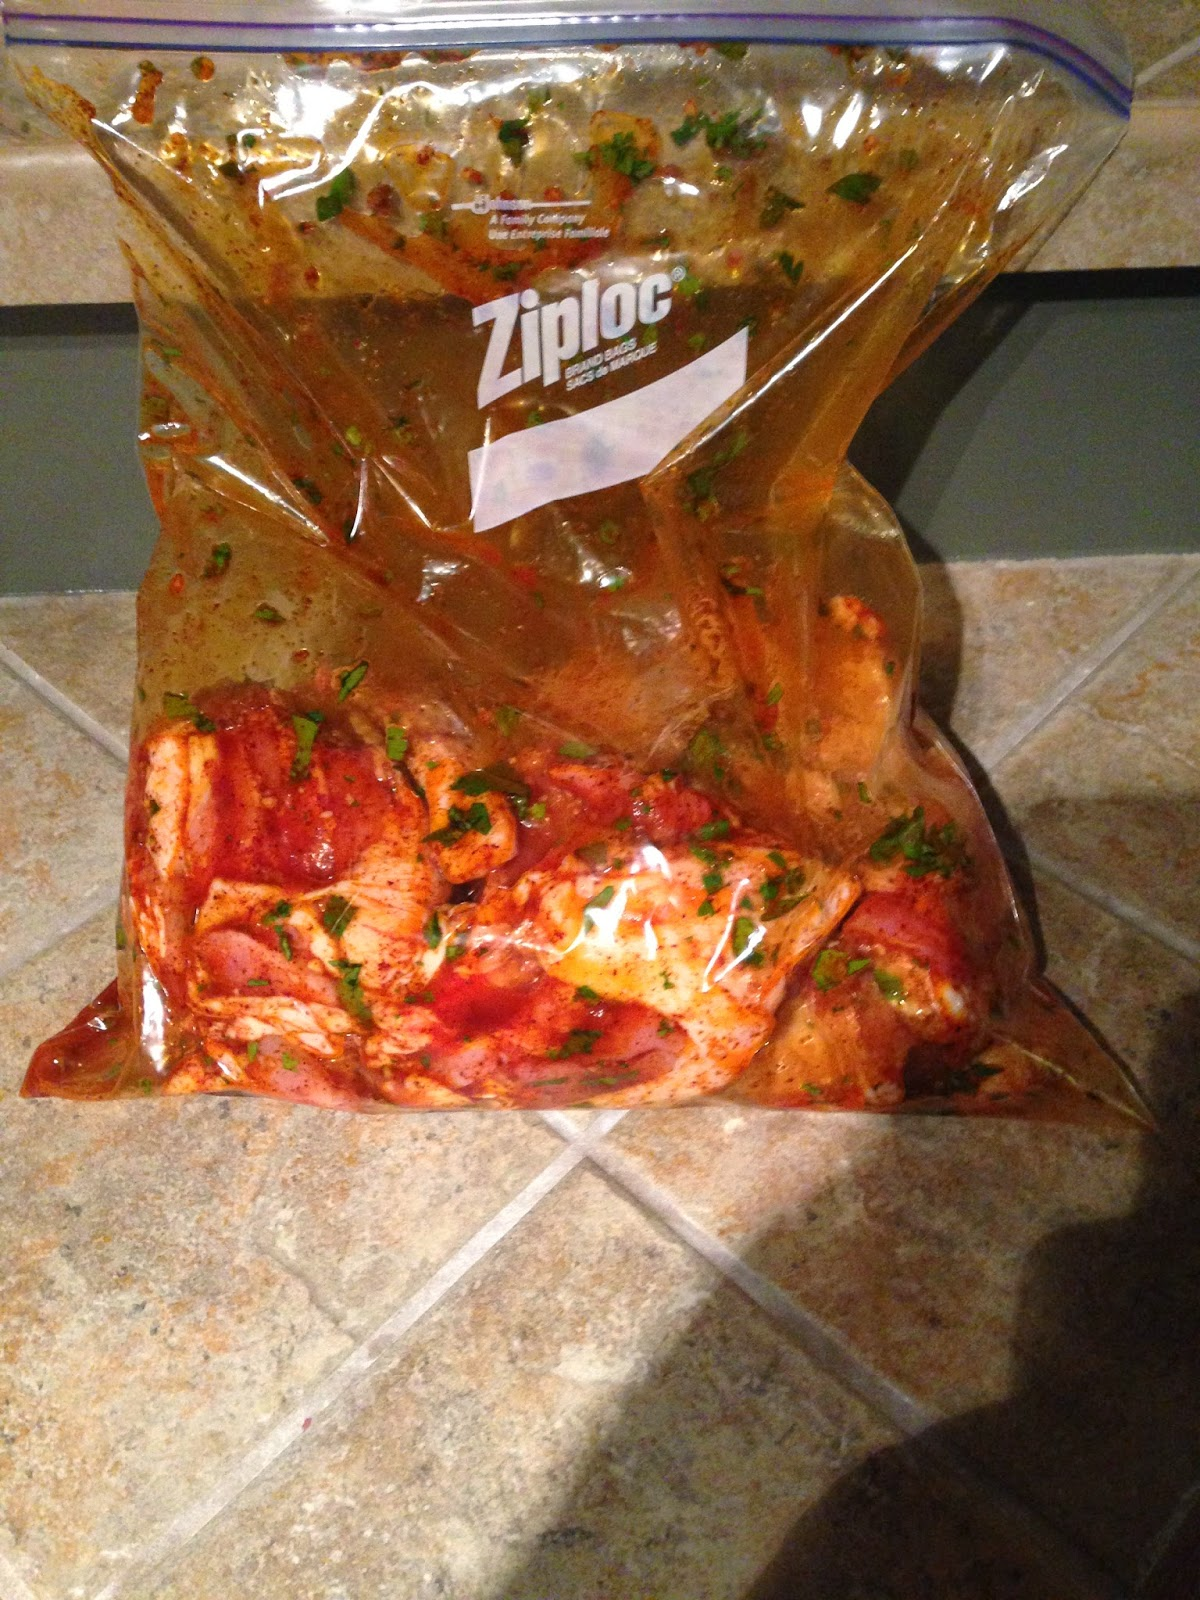 ... Ziploc & toss until the marinade is evenly distributed on the chicken